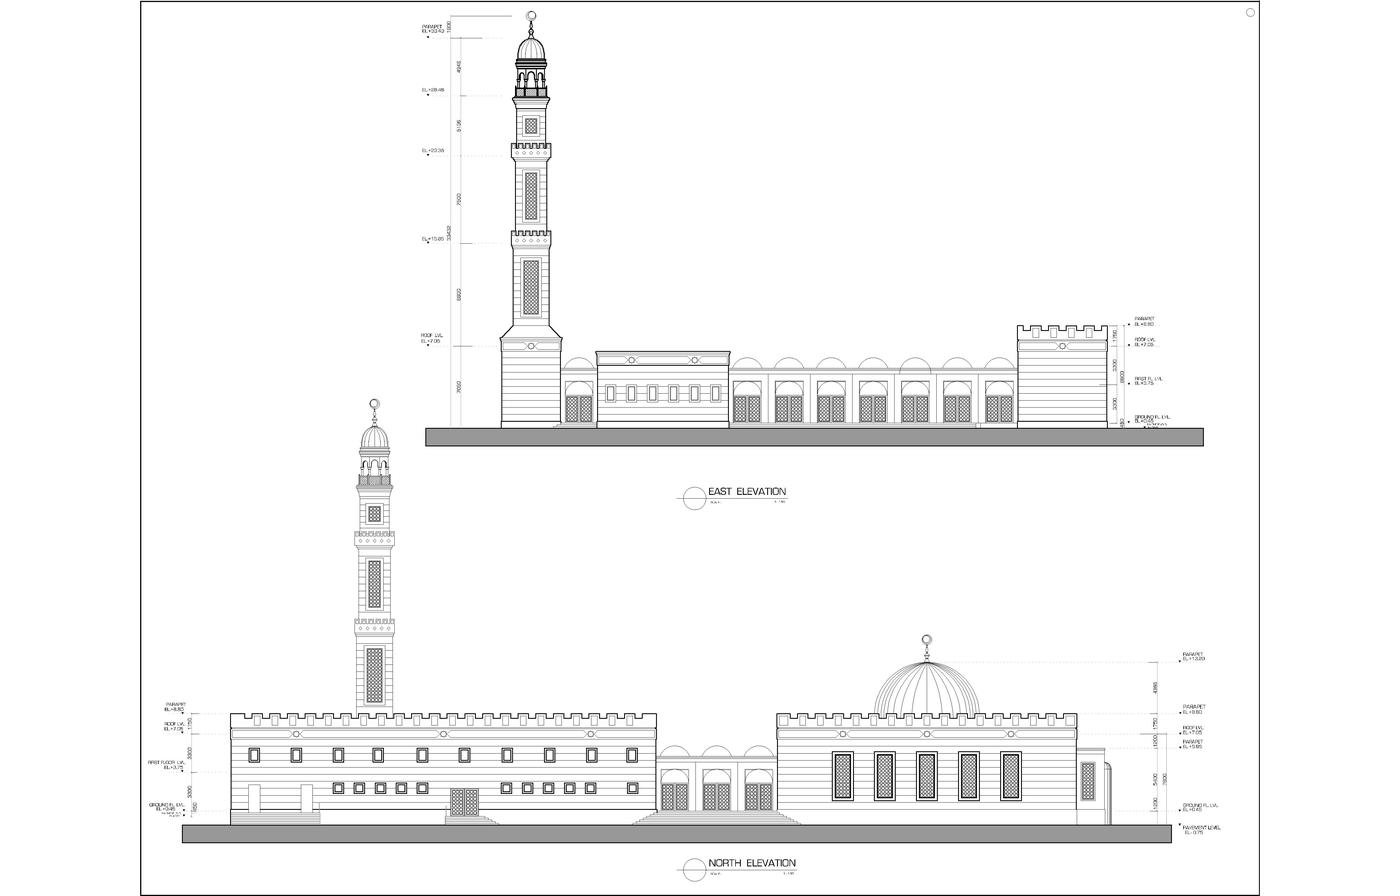 Mosque Detail: Architecture Drawings By Mohammed Asim Baig At Coroflot.com